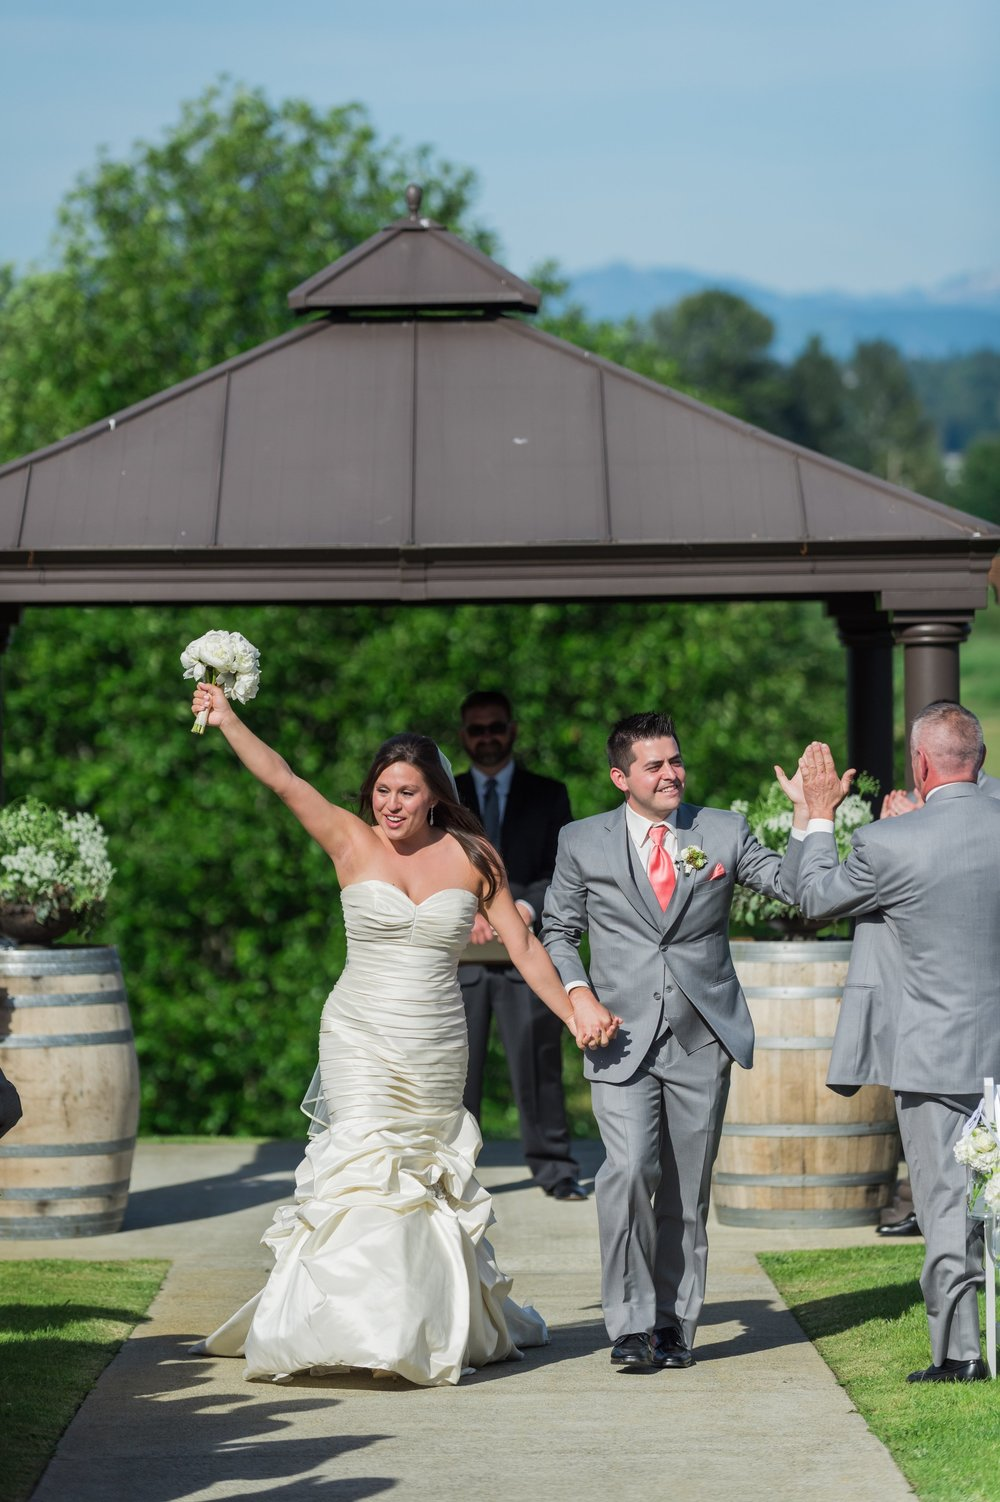 Lord Hill Farms Wedding in Snohomish | Wedding Wise Seattle Planning